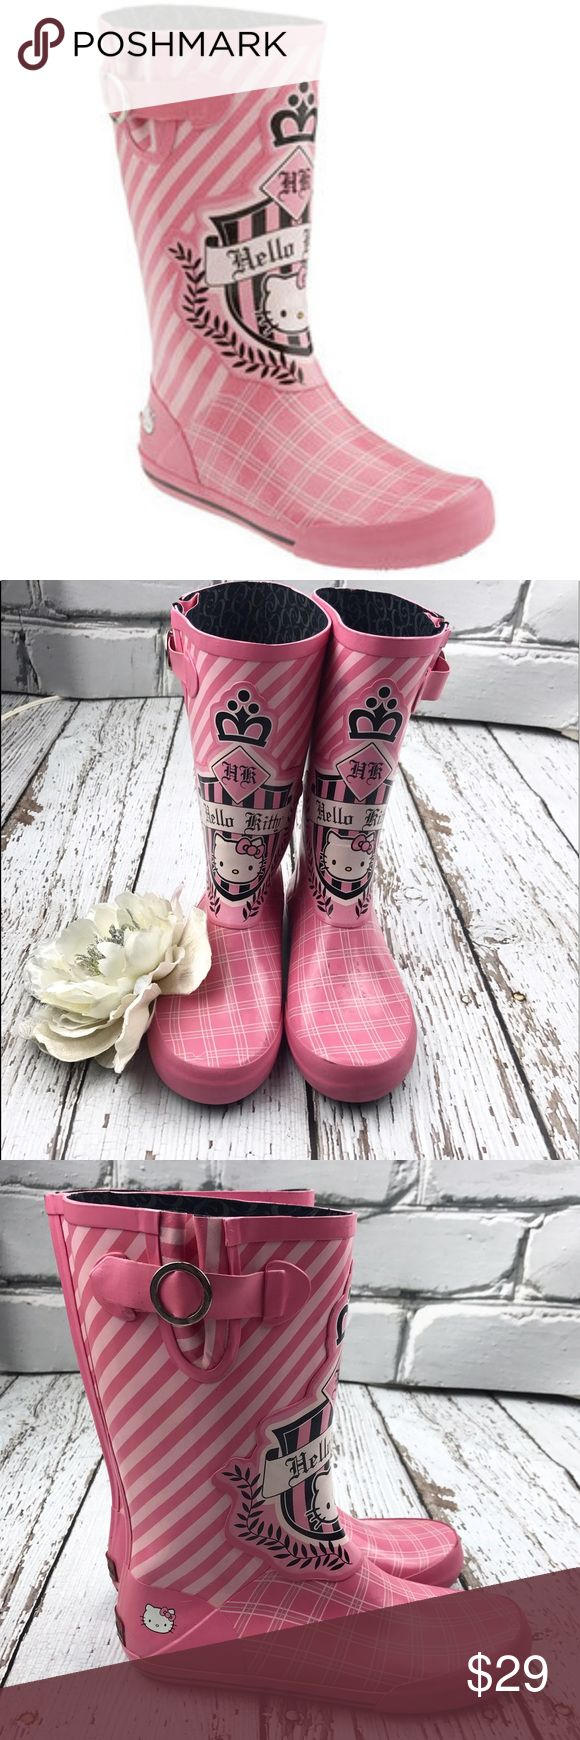 💕SALE💕 Chooka Hello Kitty Pink Rain Boots Adorable 💕 Chooka Hello Kitty Pink Rain Boots 100% Waterproof thin cotton lining removable insoles Super cute for summer rains Chooka Shoes Winter & Rain Boots